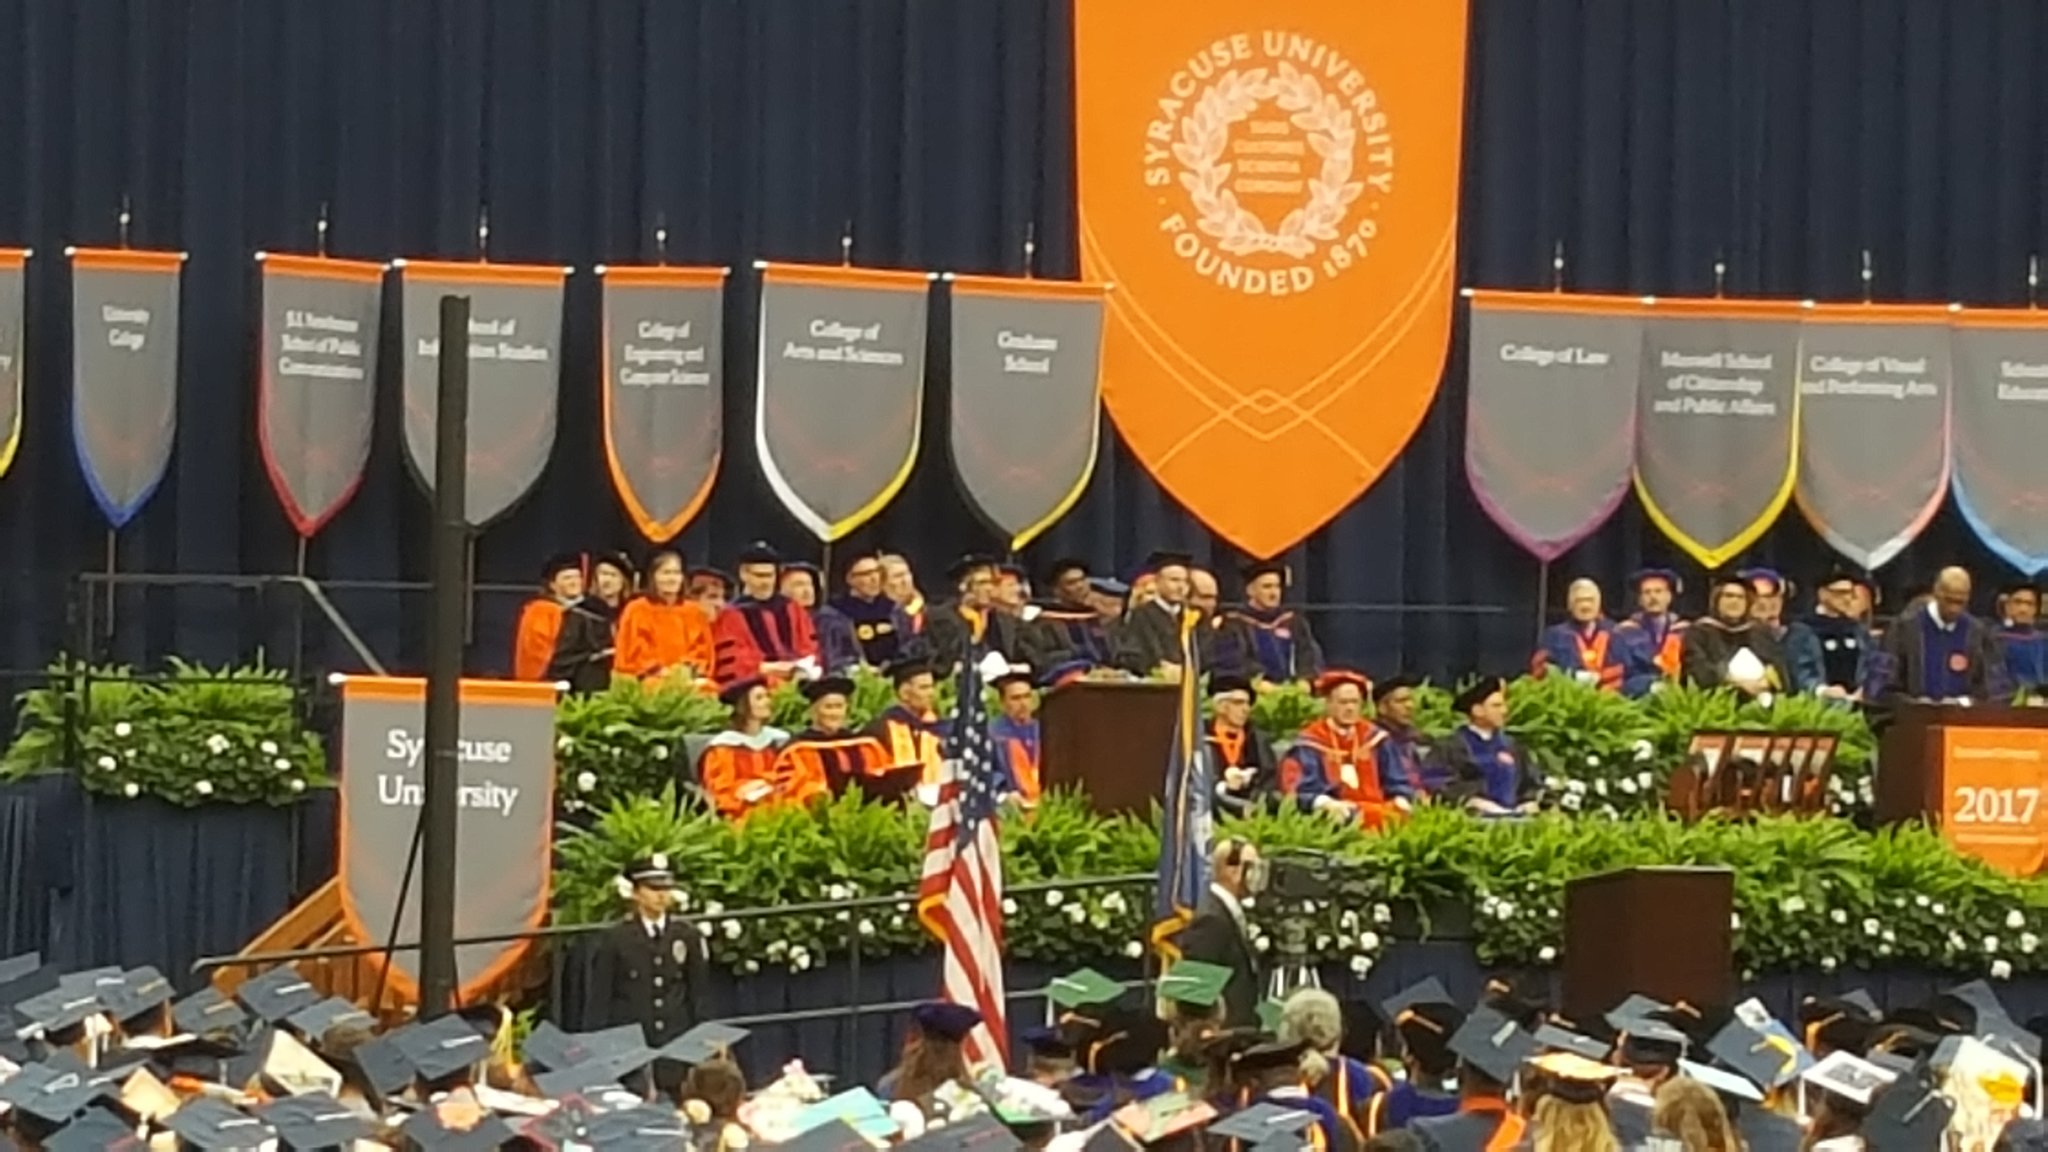 #VernonJordan shares experiences of racial discrimination & inspires #SUGrad17 to overcome challenges in changing world @SyracuseU @aybwill https://t.co/DWOFQbqHPX